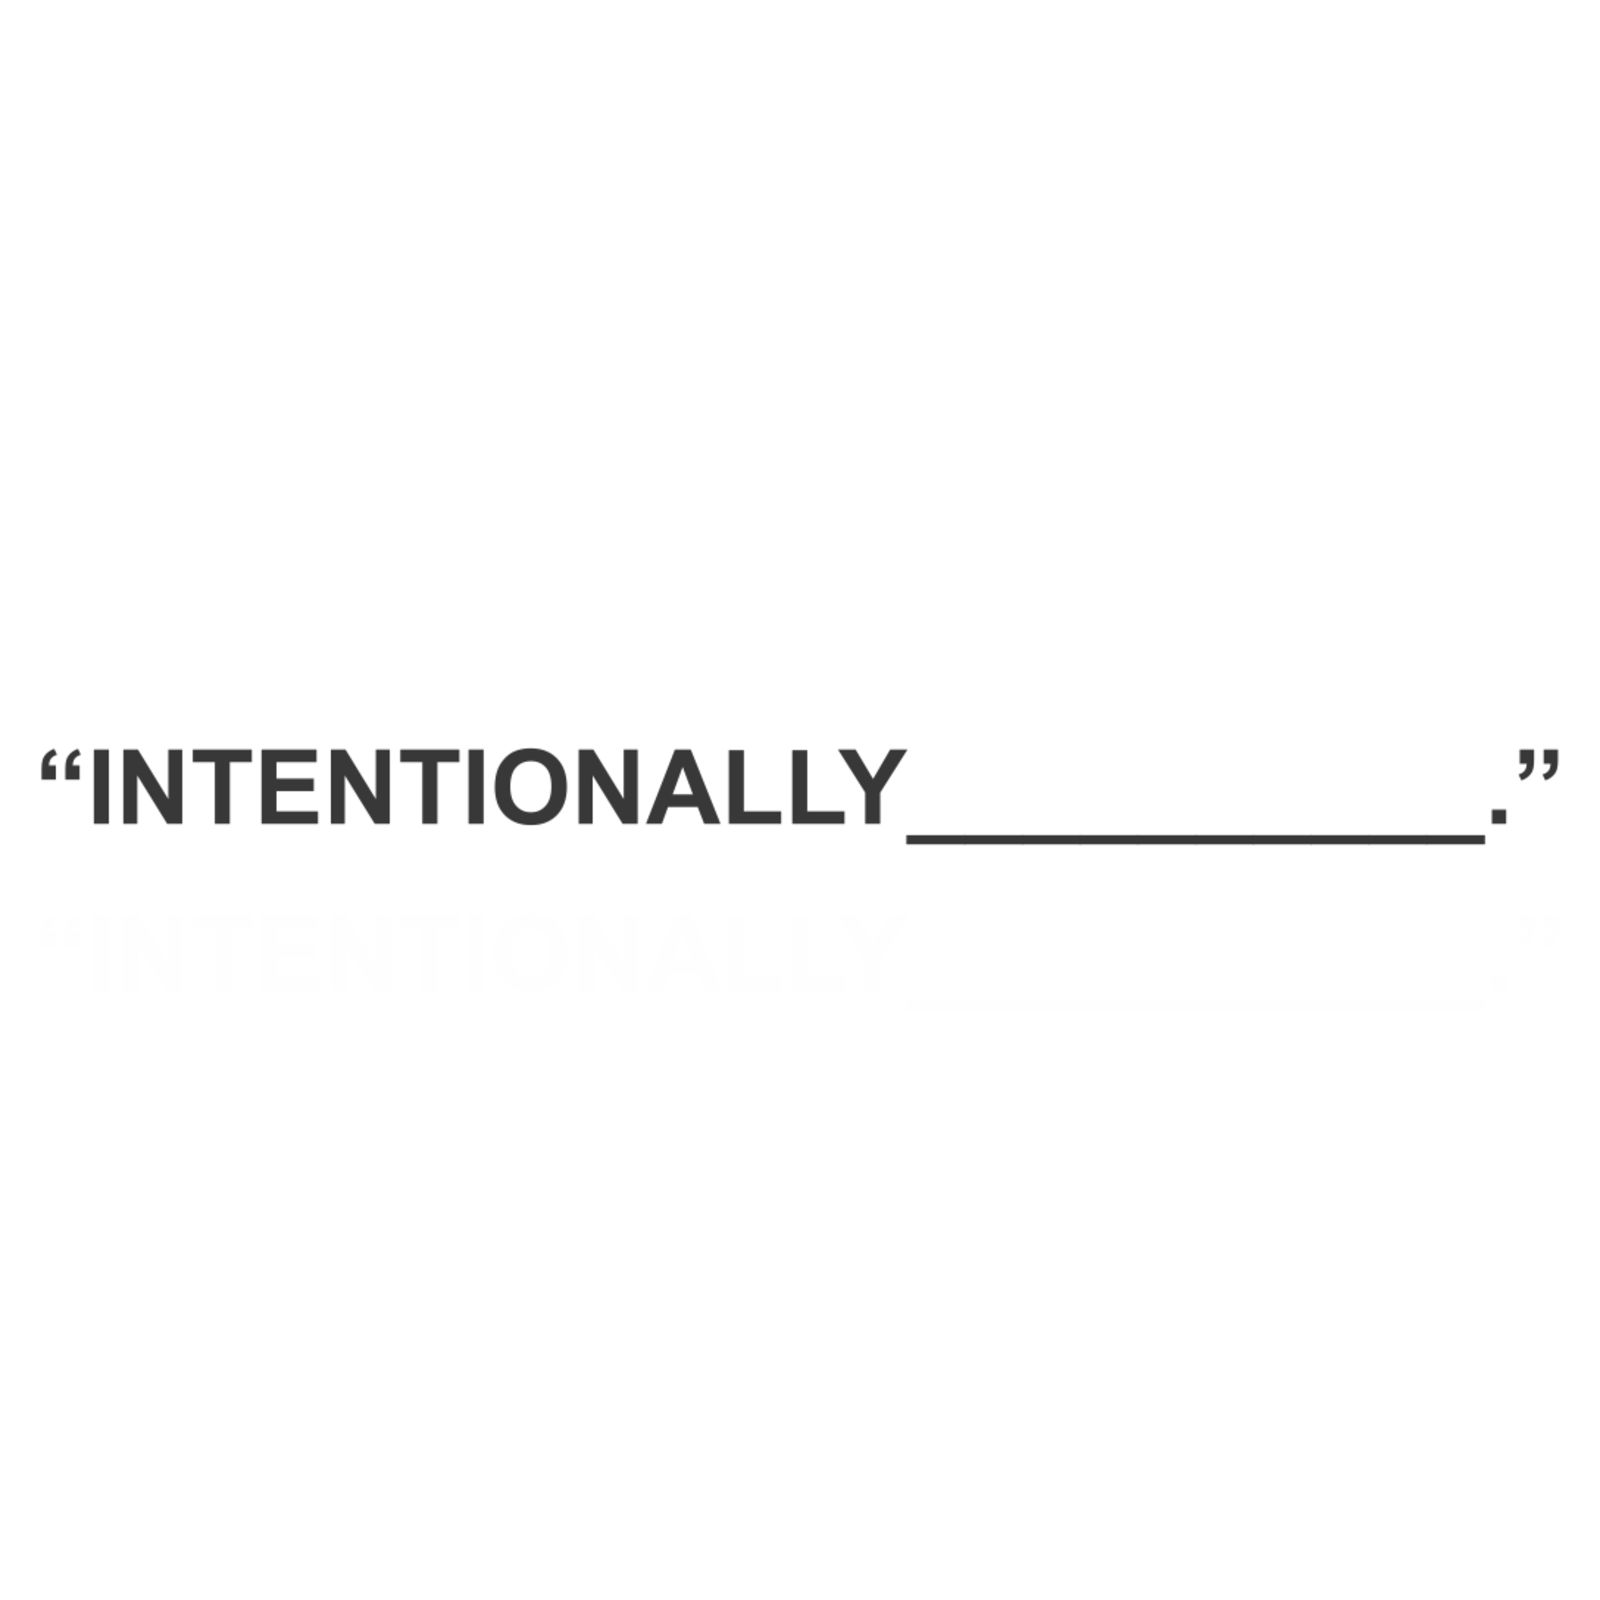 INTENTIONALLY (Image 1)